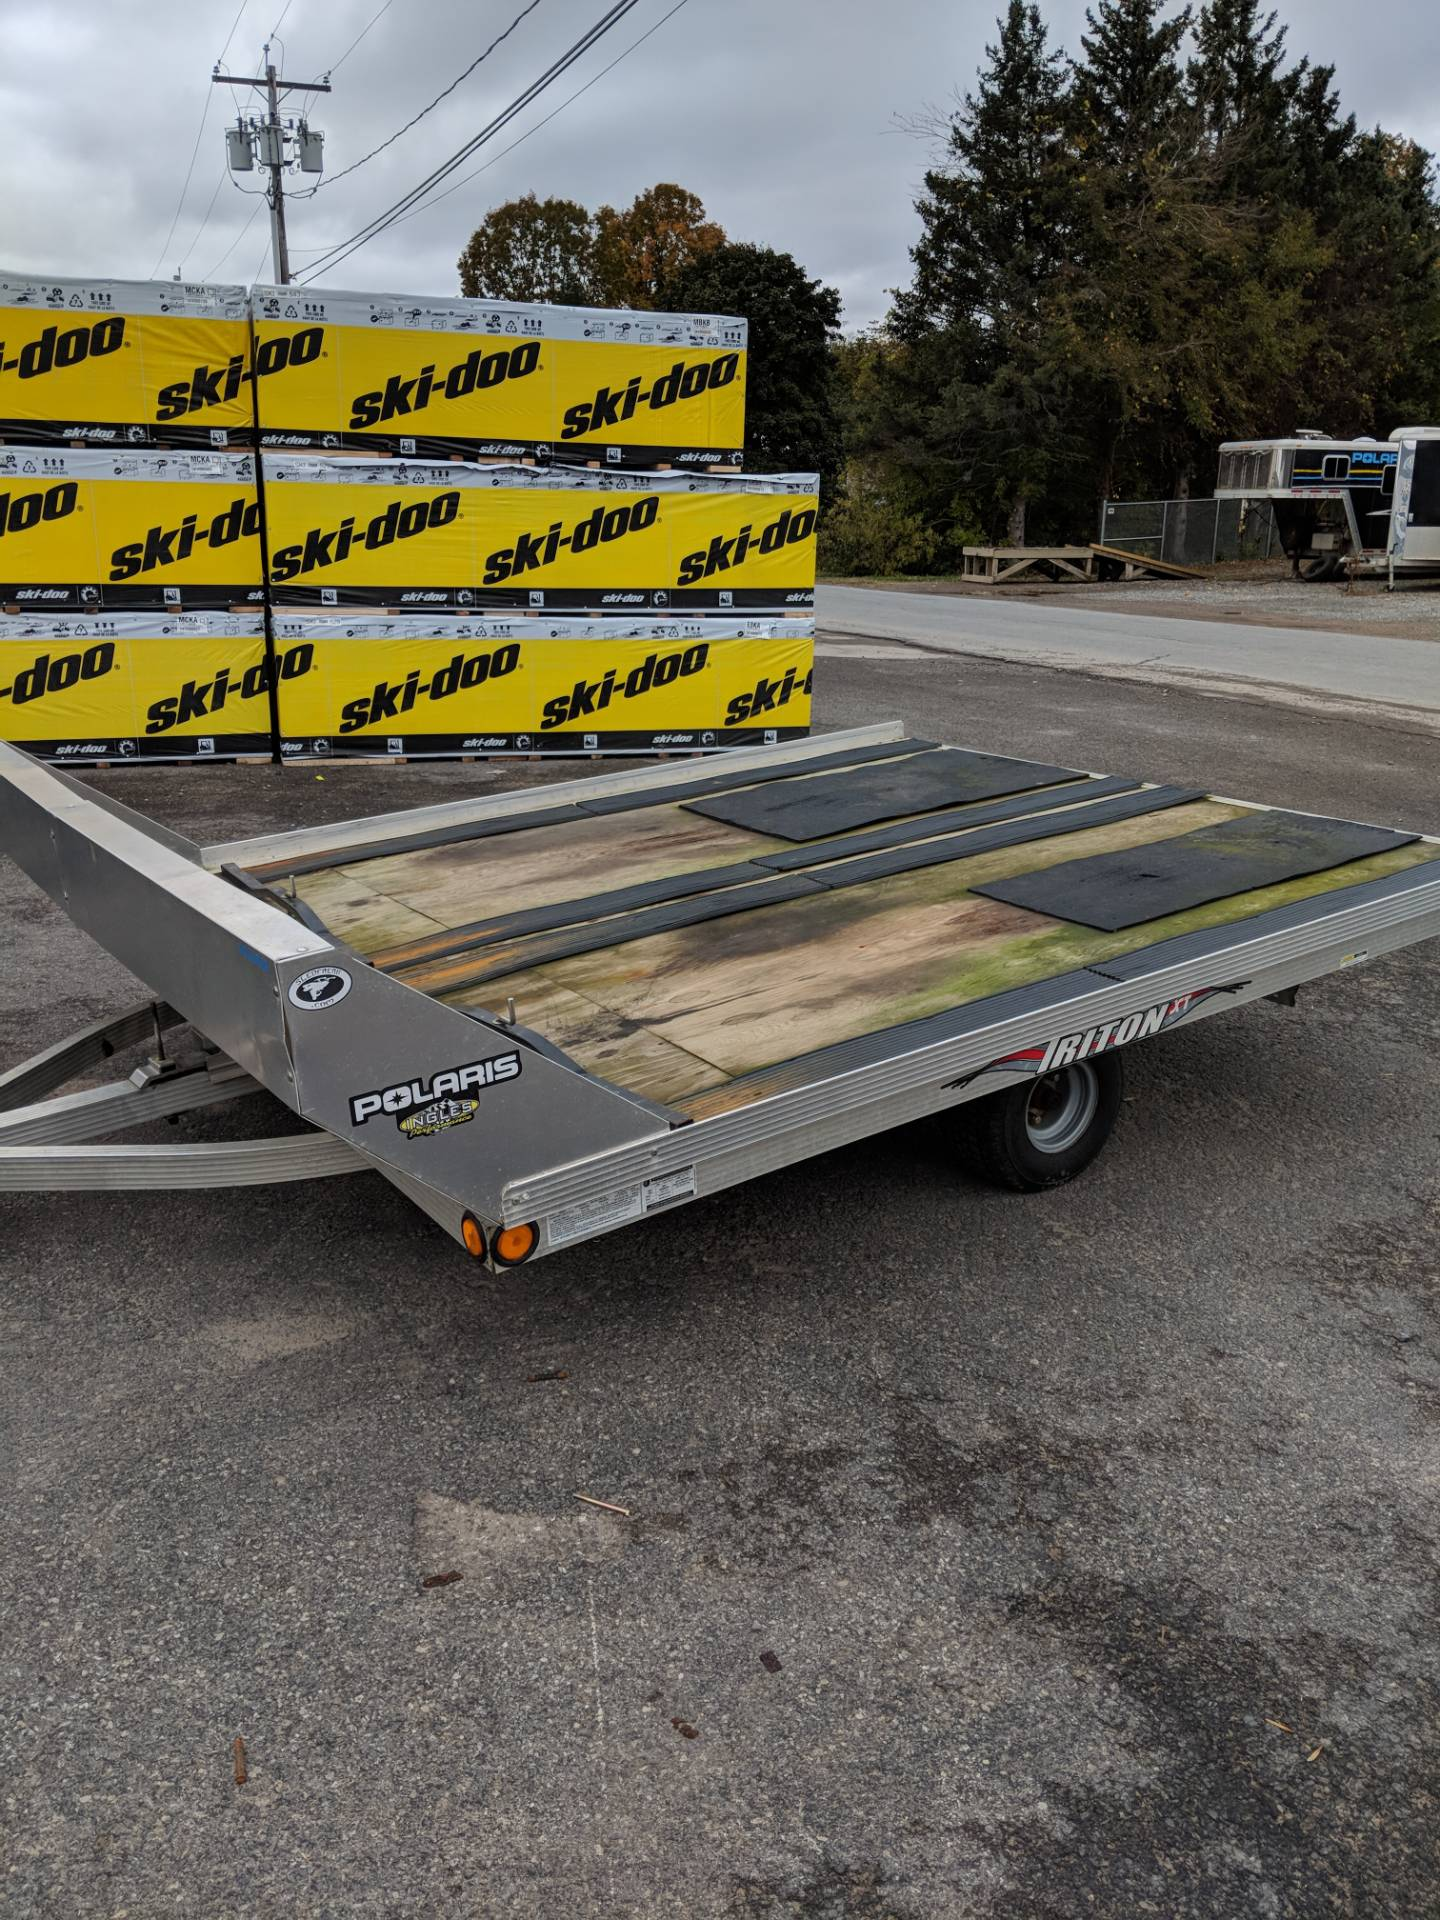 Electrical Wiring Harness Triton Trailers Boat Trailer Used 2012 Xt10 101 Sport Utility In Phoenix